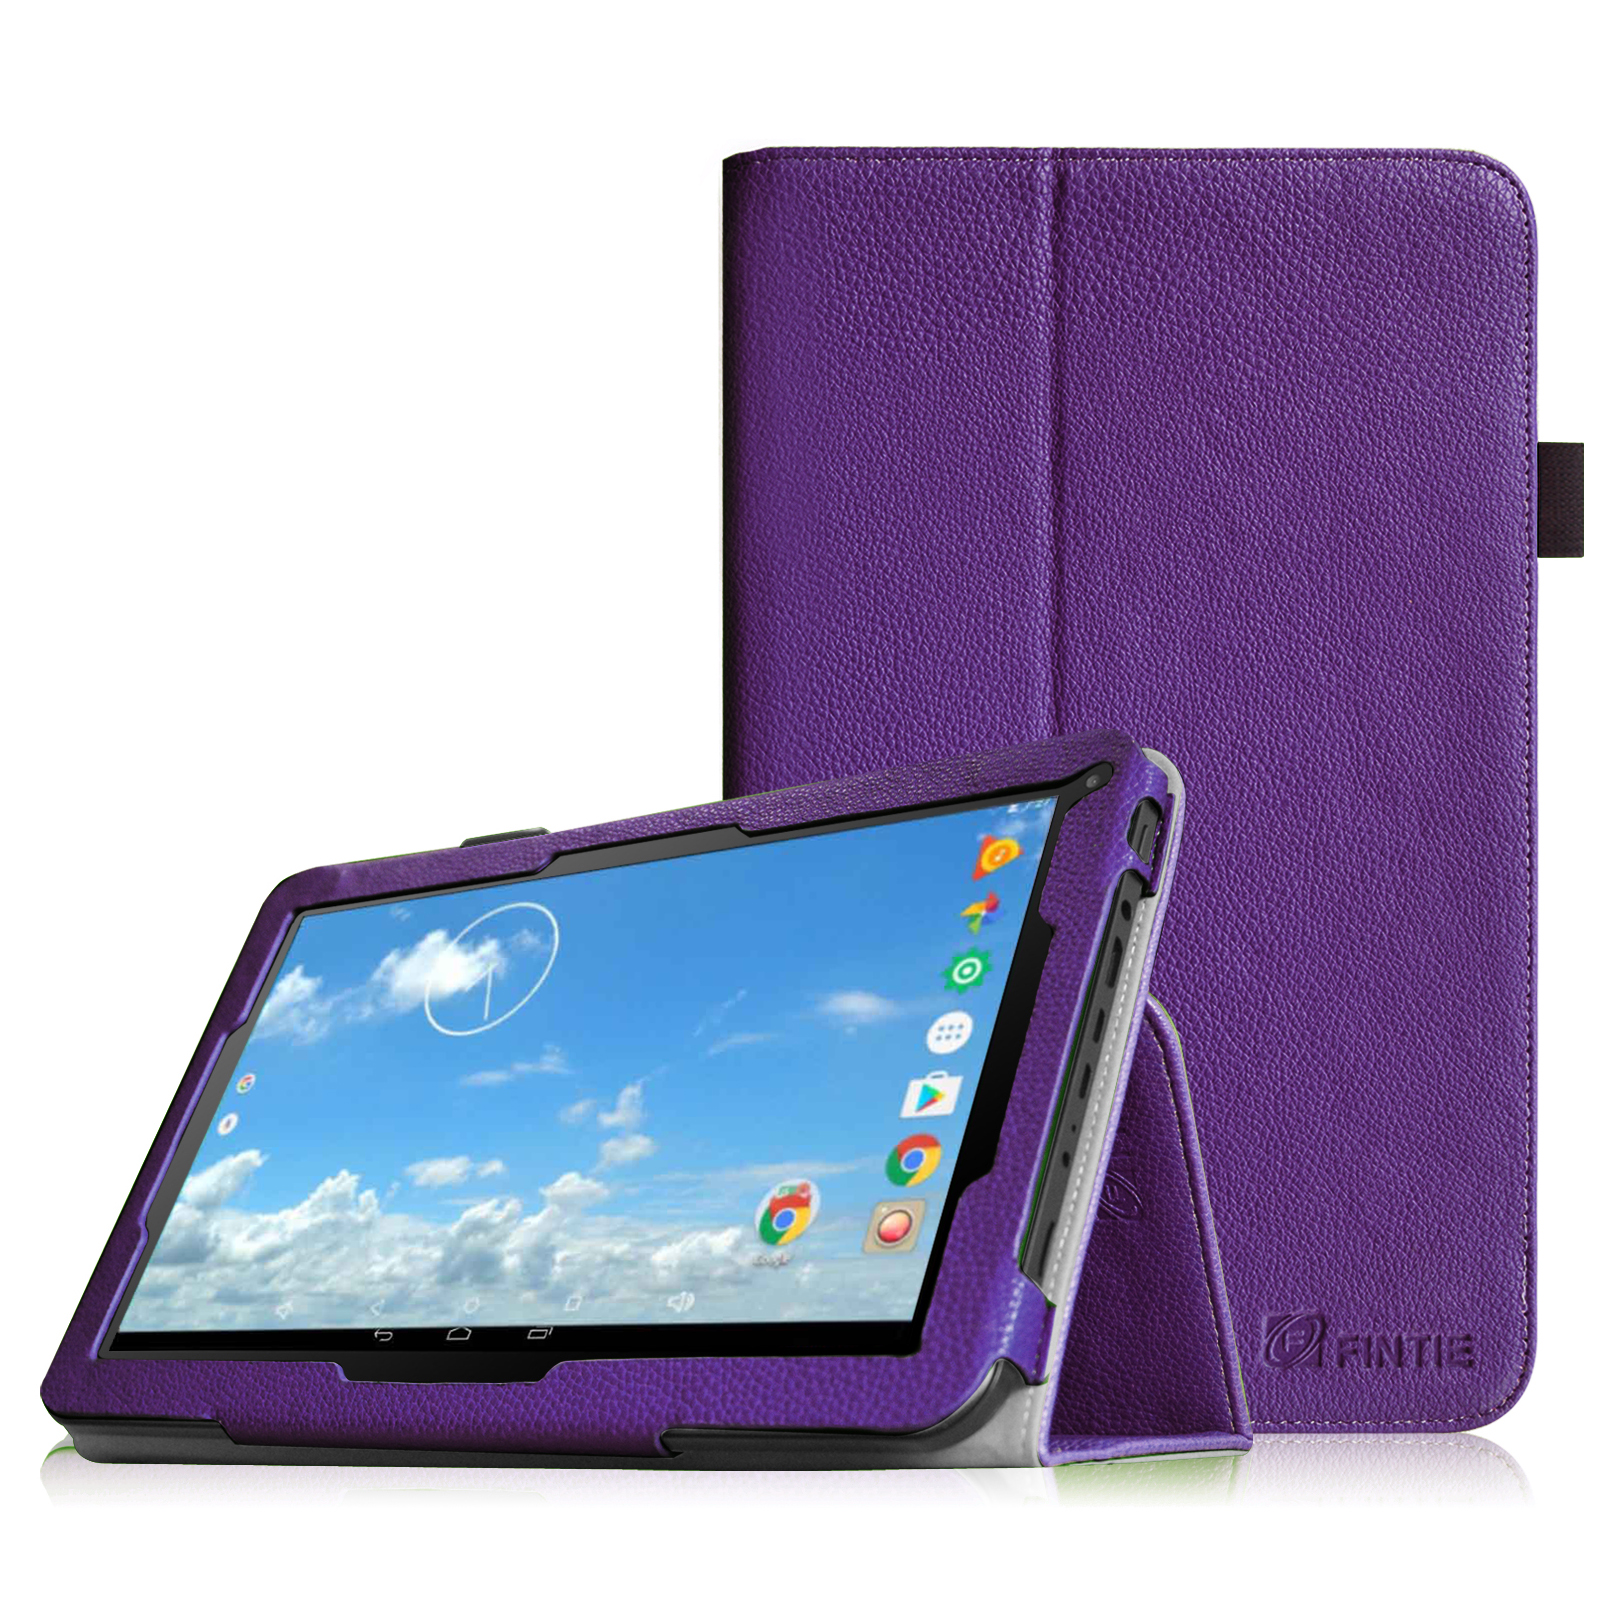 "Fintie iView SupraPad 10.1"" Tablet Case - Premium Vegan Leather Slim Fit Folio Cover with Stylus Holder, Violet"